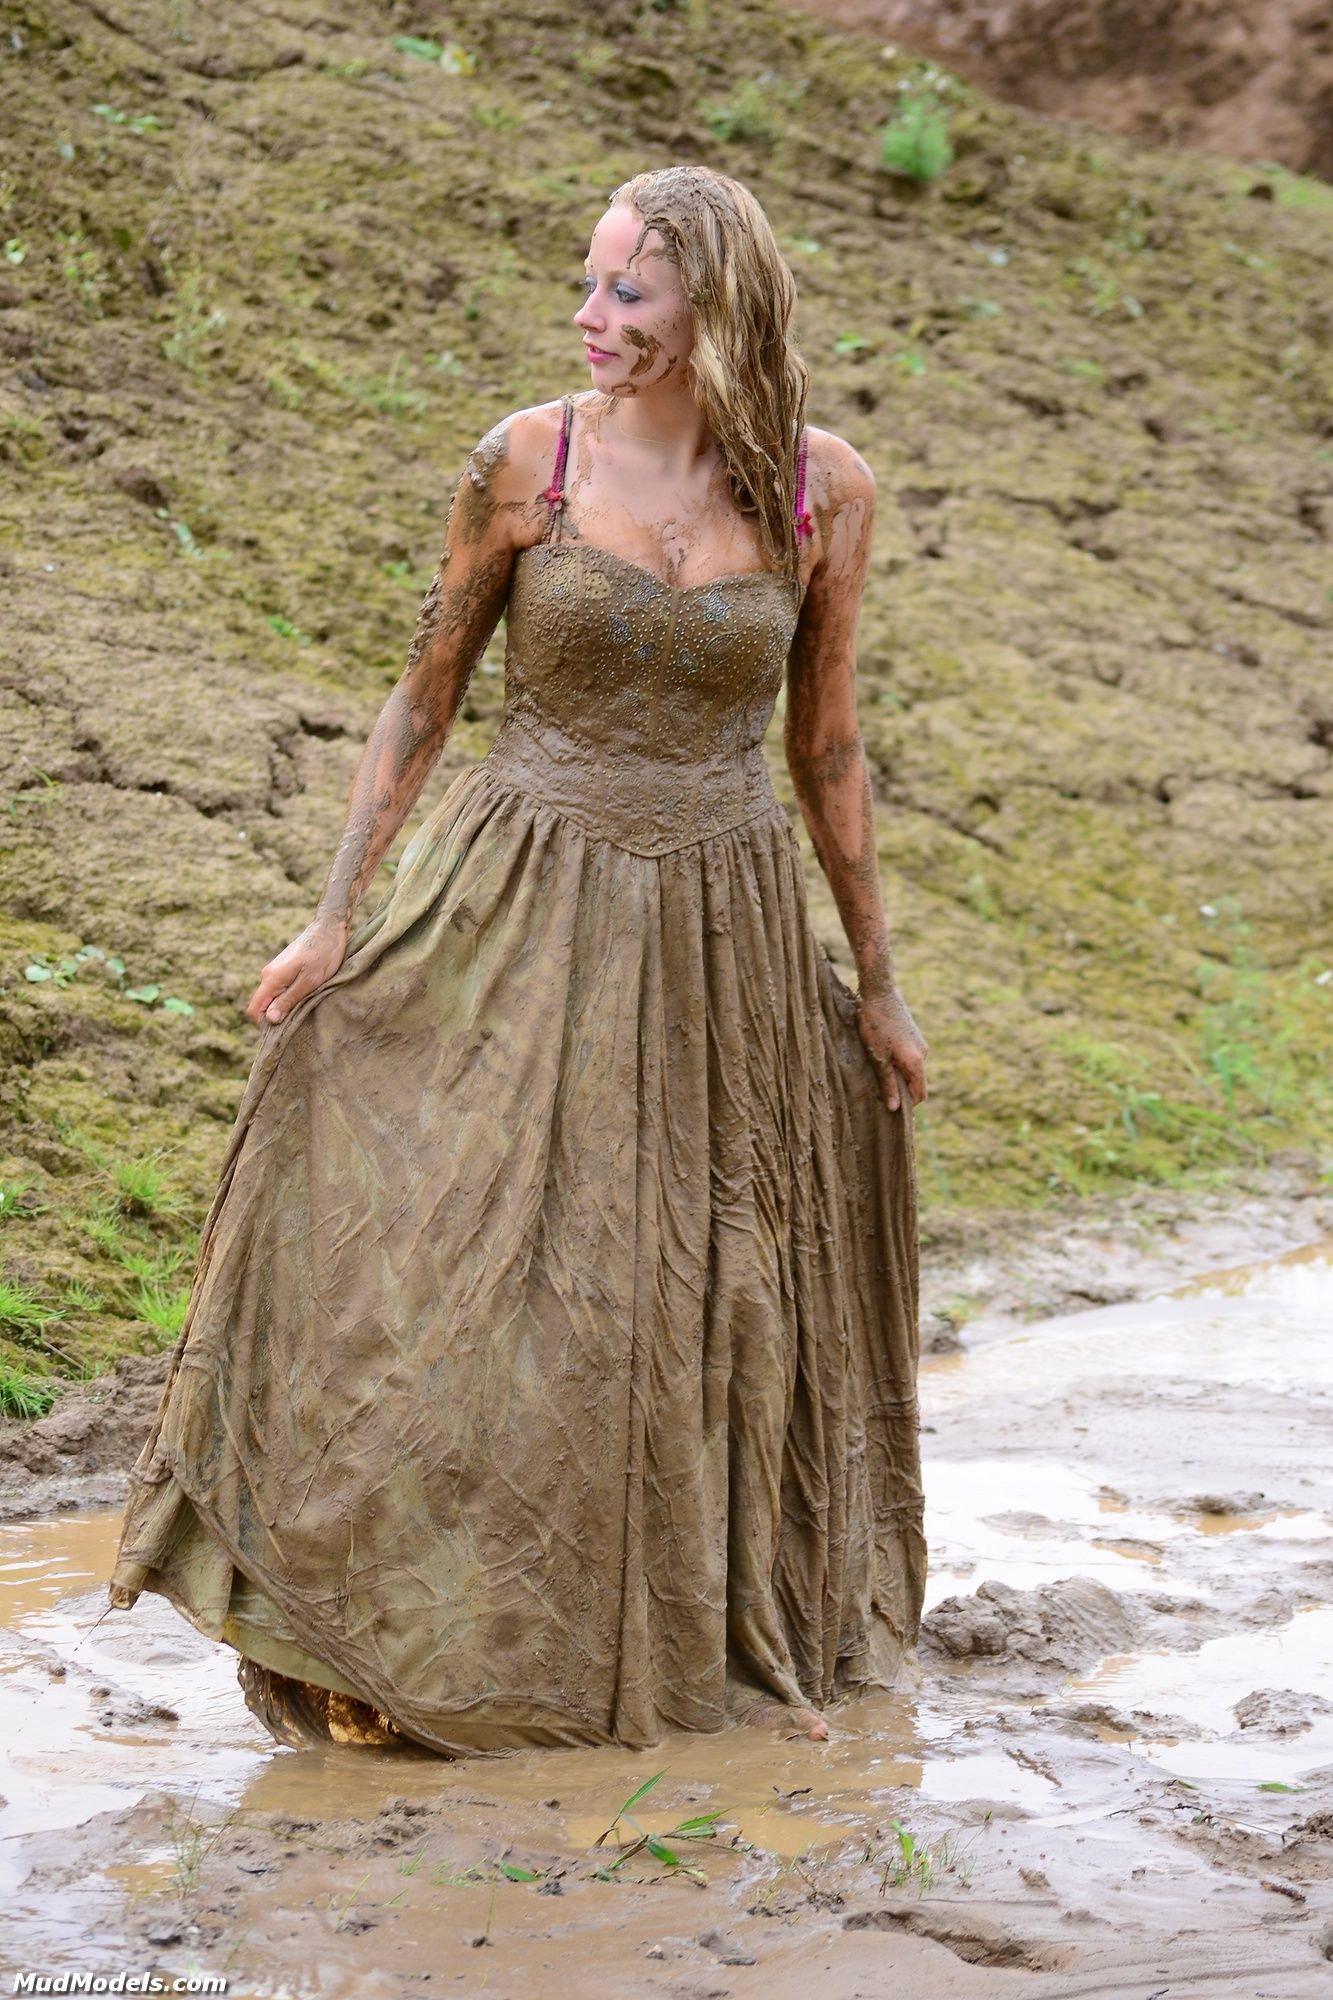 trash dress picture ideas - Trashing Dresses Woman in Mud Bing images